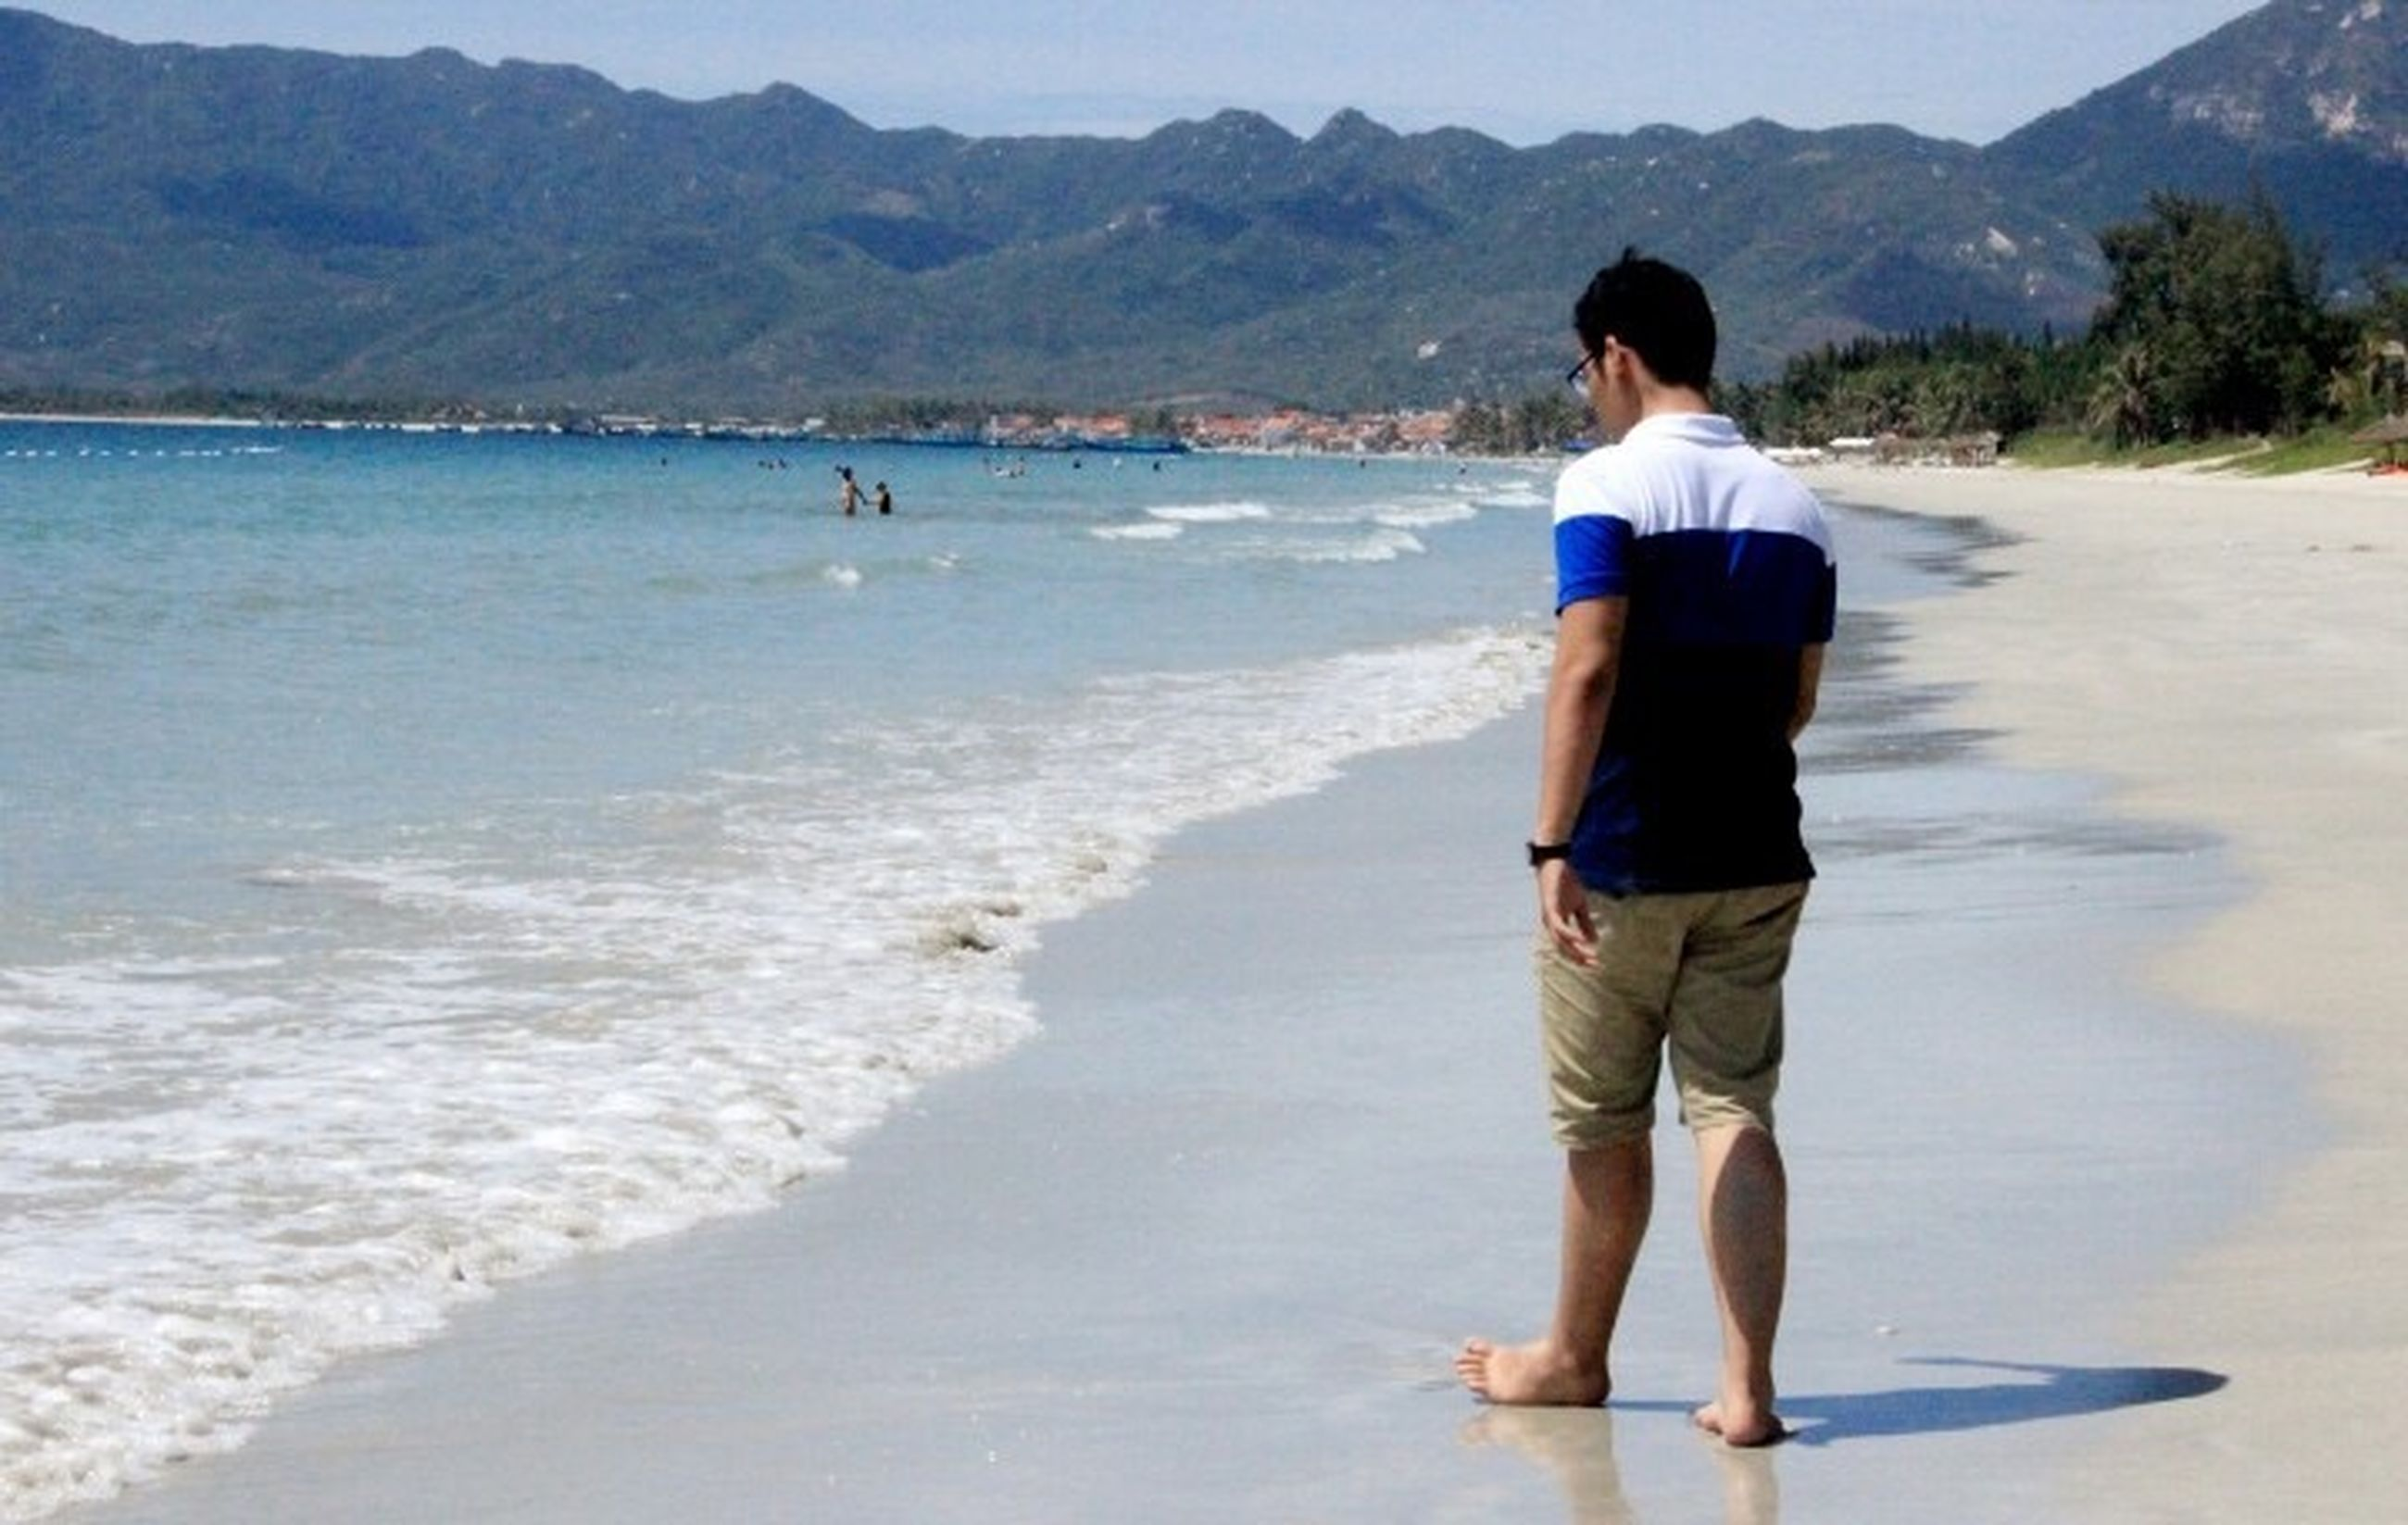 water, beach, mountain, sea, shore, leisure activity, lifestyles, sand, vacations, scenics, casual clothing, nature, beauty in nature, tranquil scene, tranquility, full length, standing, mountain range